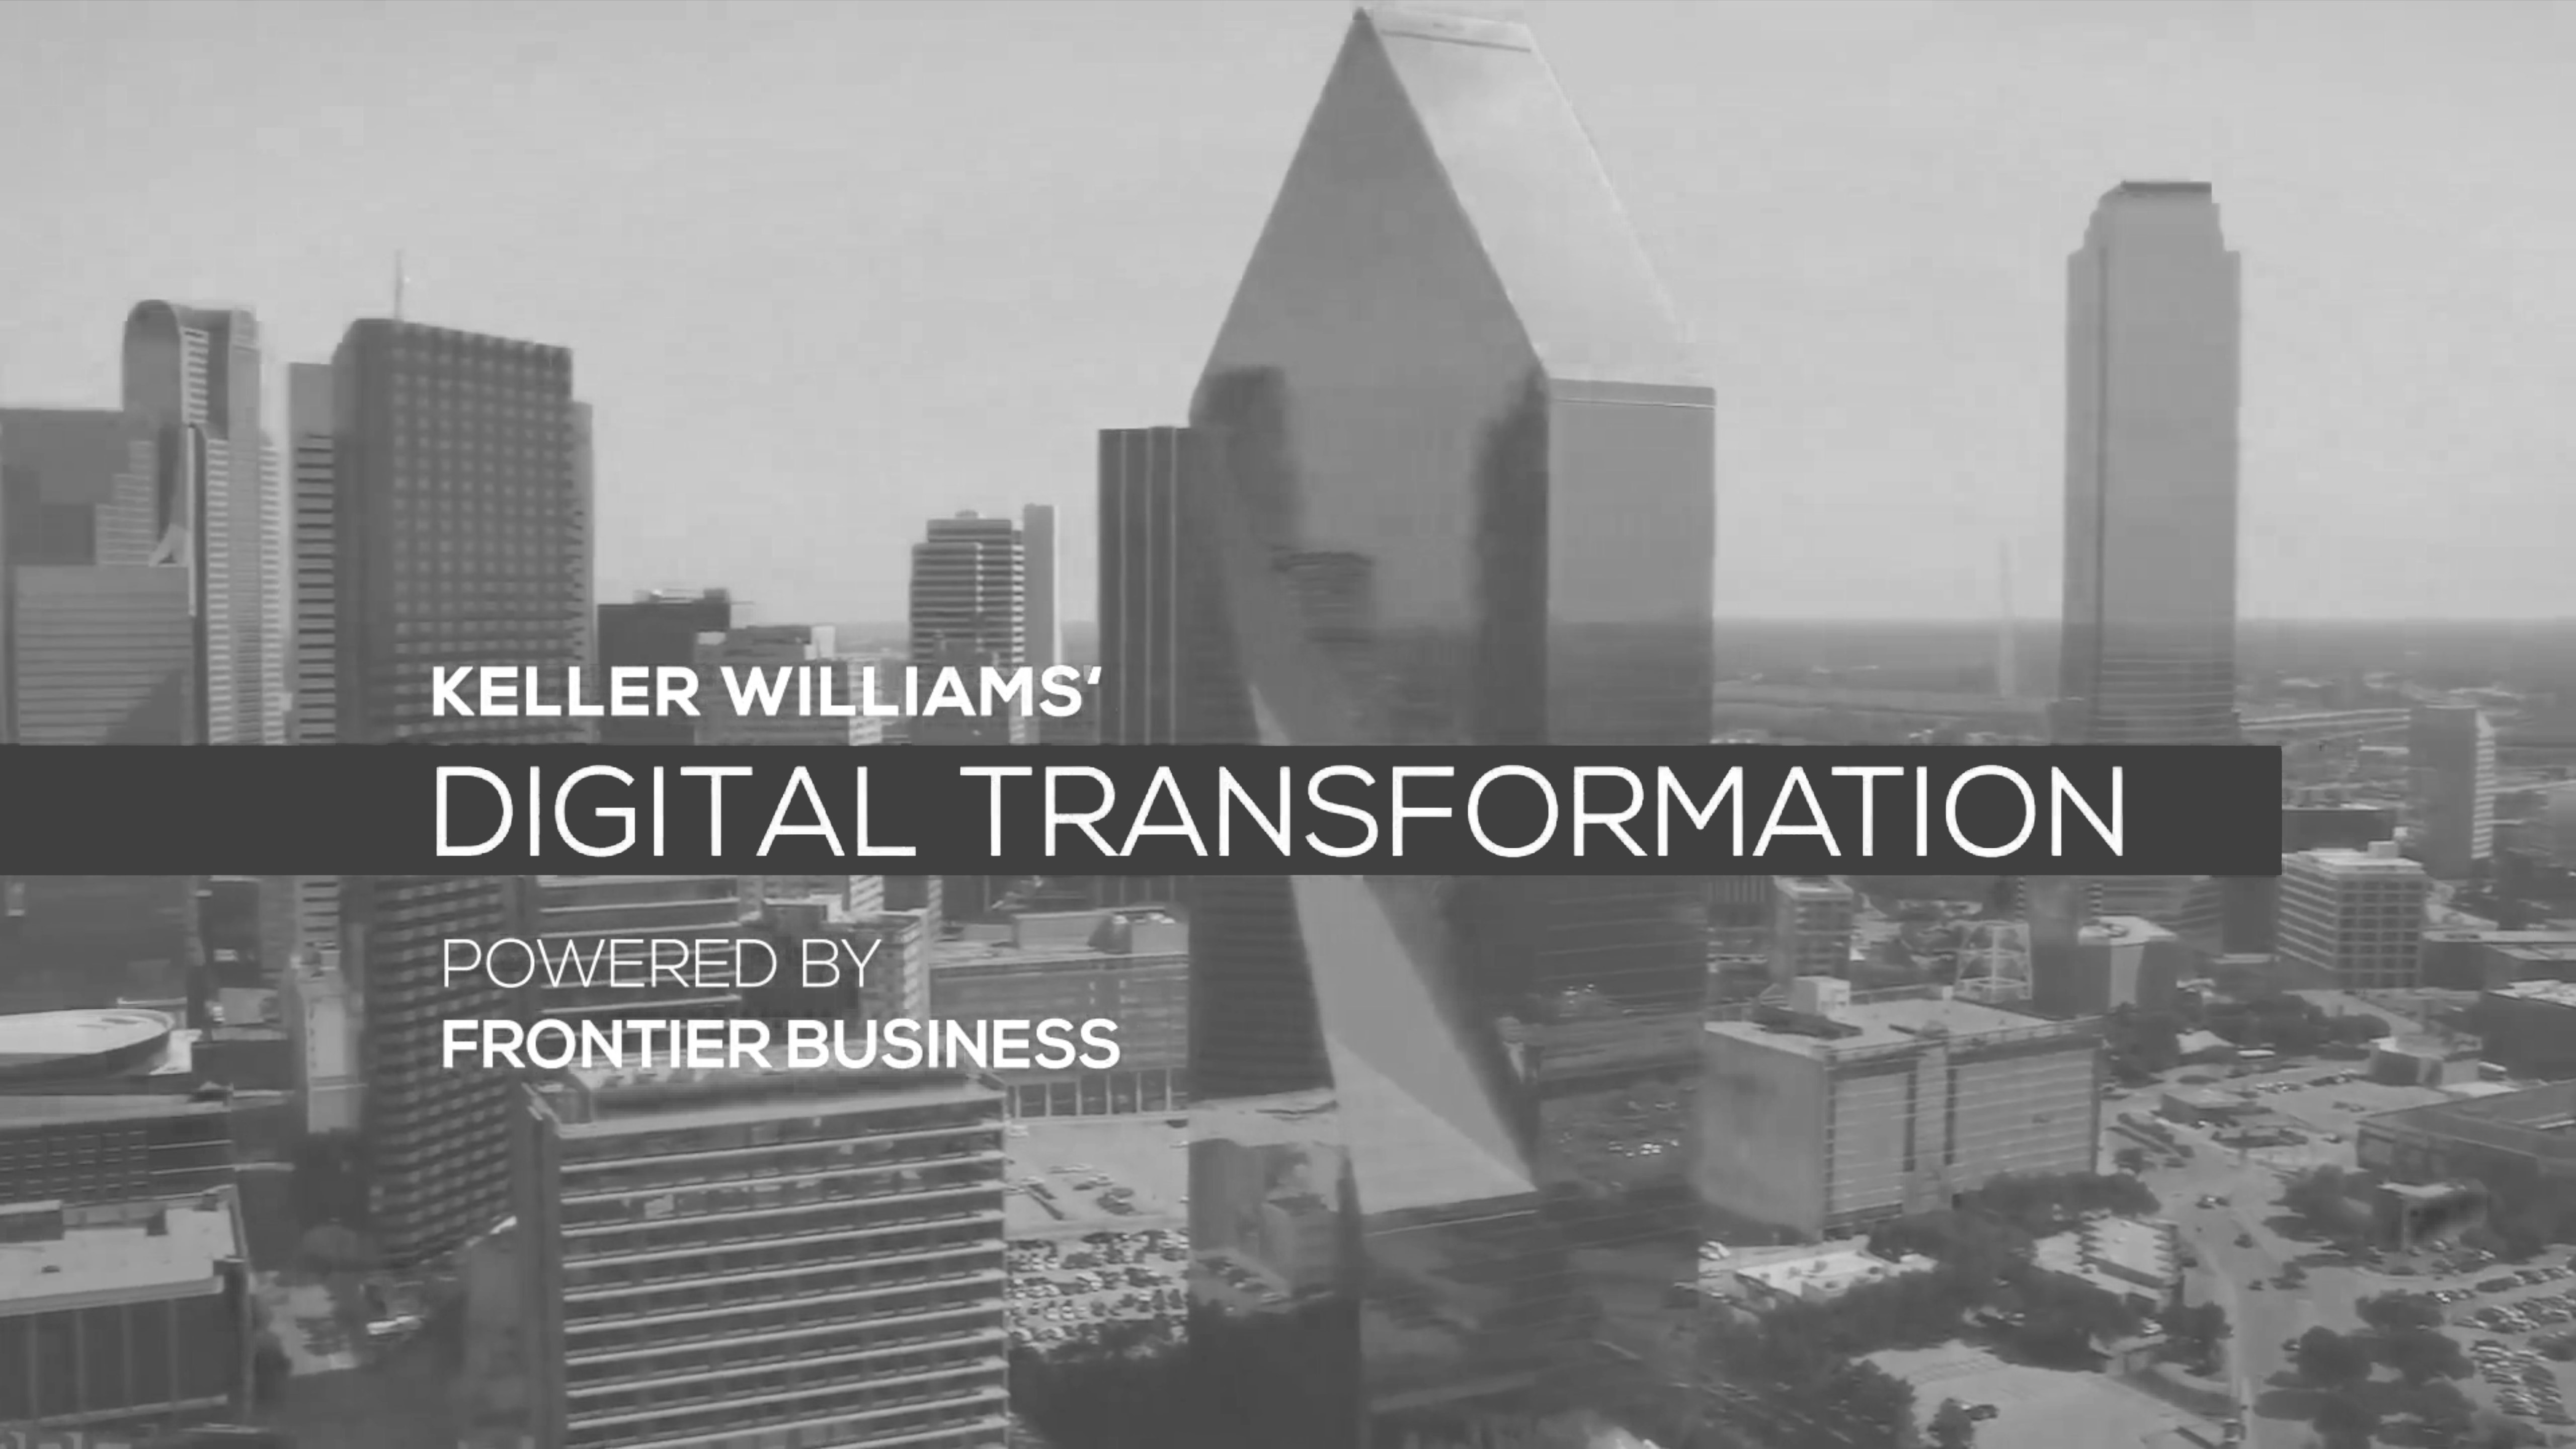 POWERING CONNECTIVITY FOR KELLER WILLIAMS